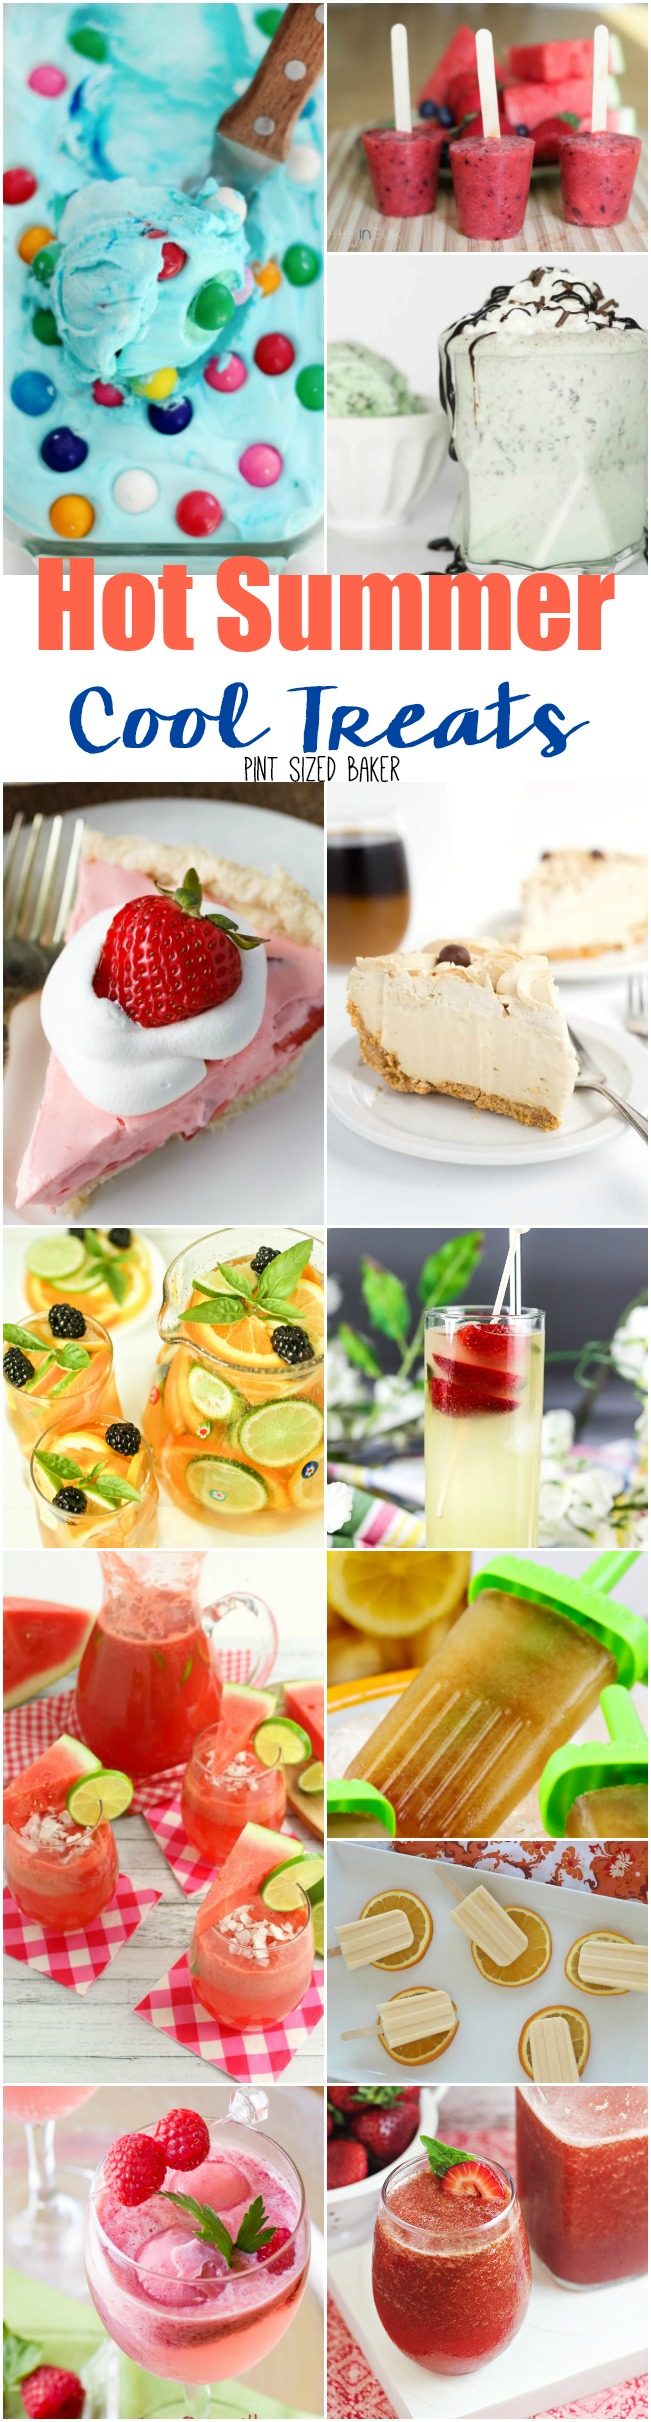 It's a Hot Summer! Cool Treats to the rescue! Ice cream, drinks, and freezer favorites!